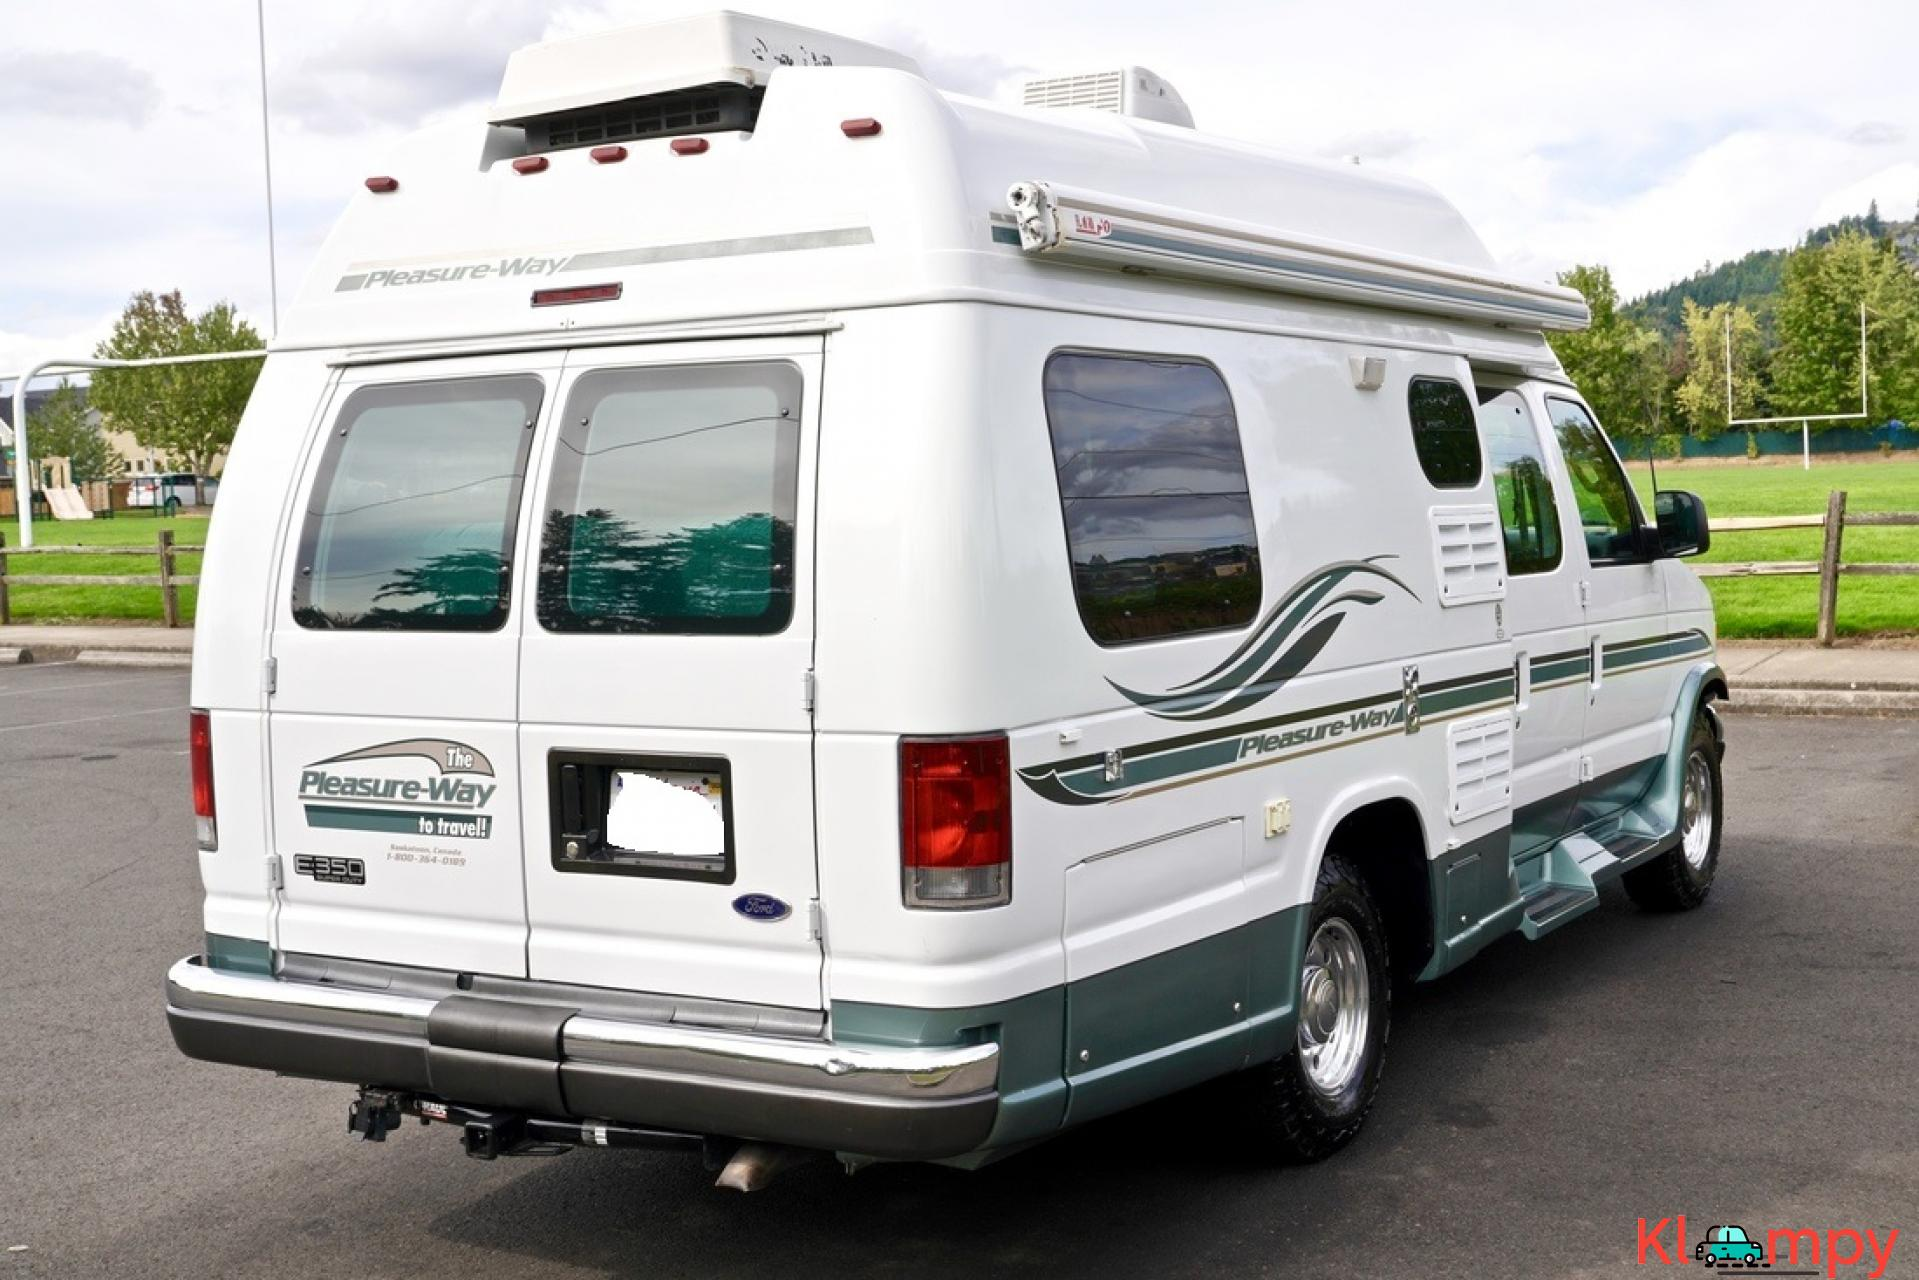 2004 Pleasure-Way Excel 20' Class B - 7/23